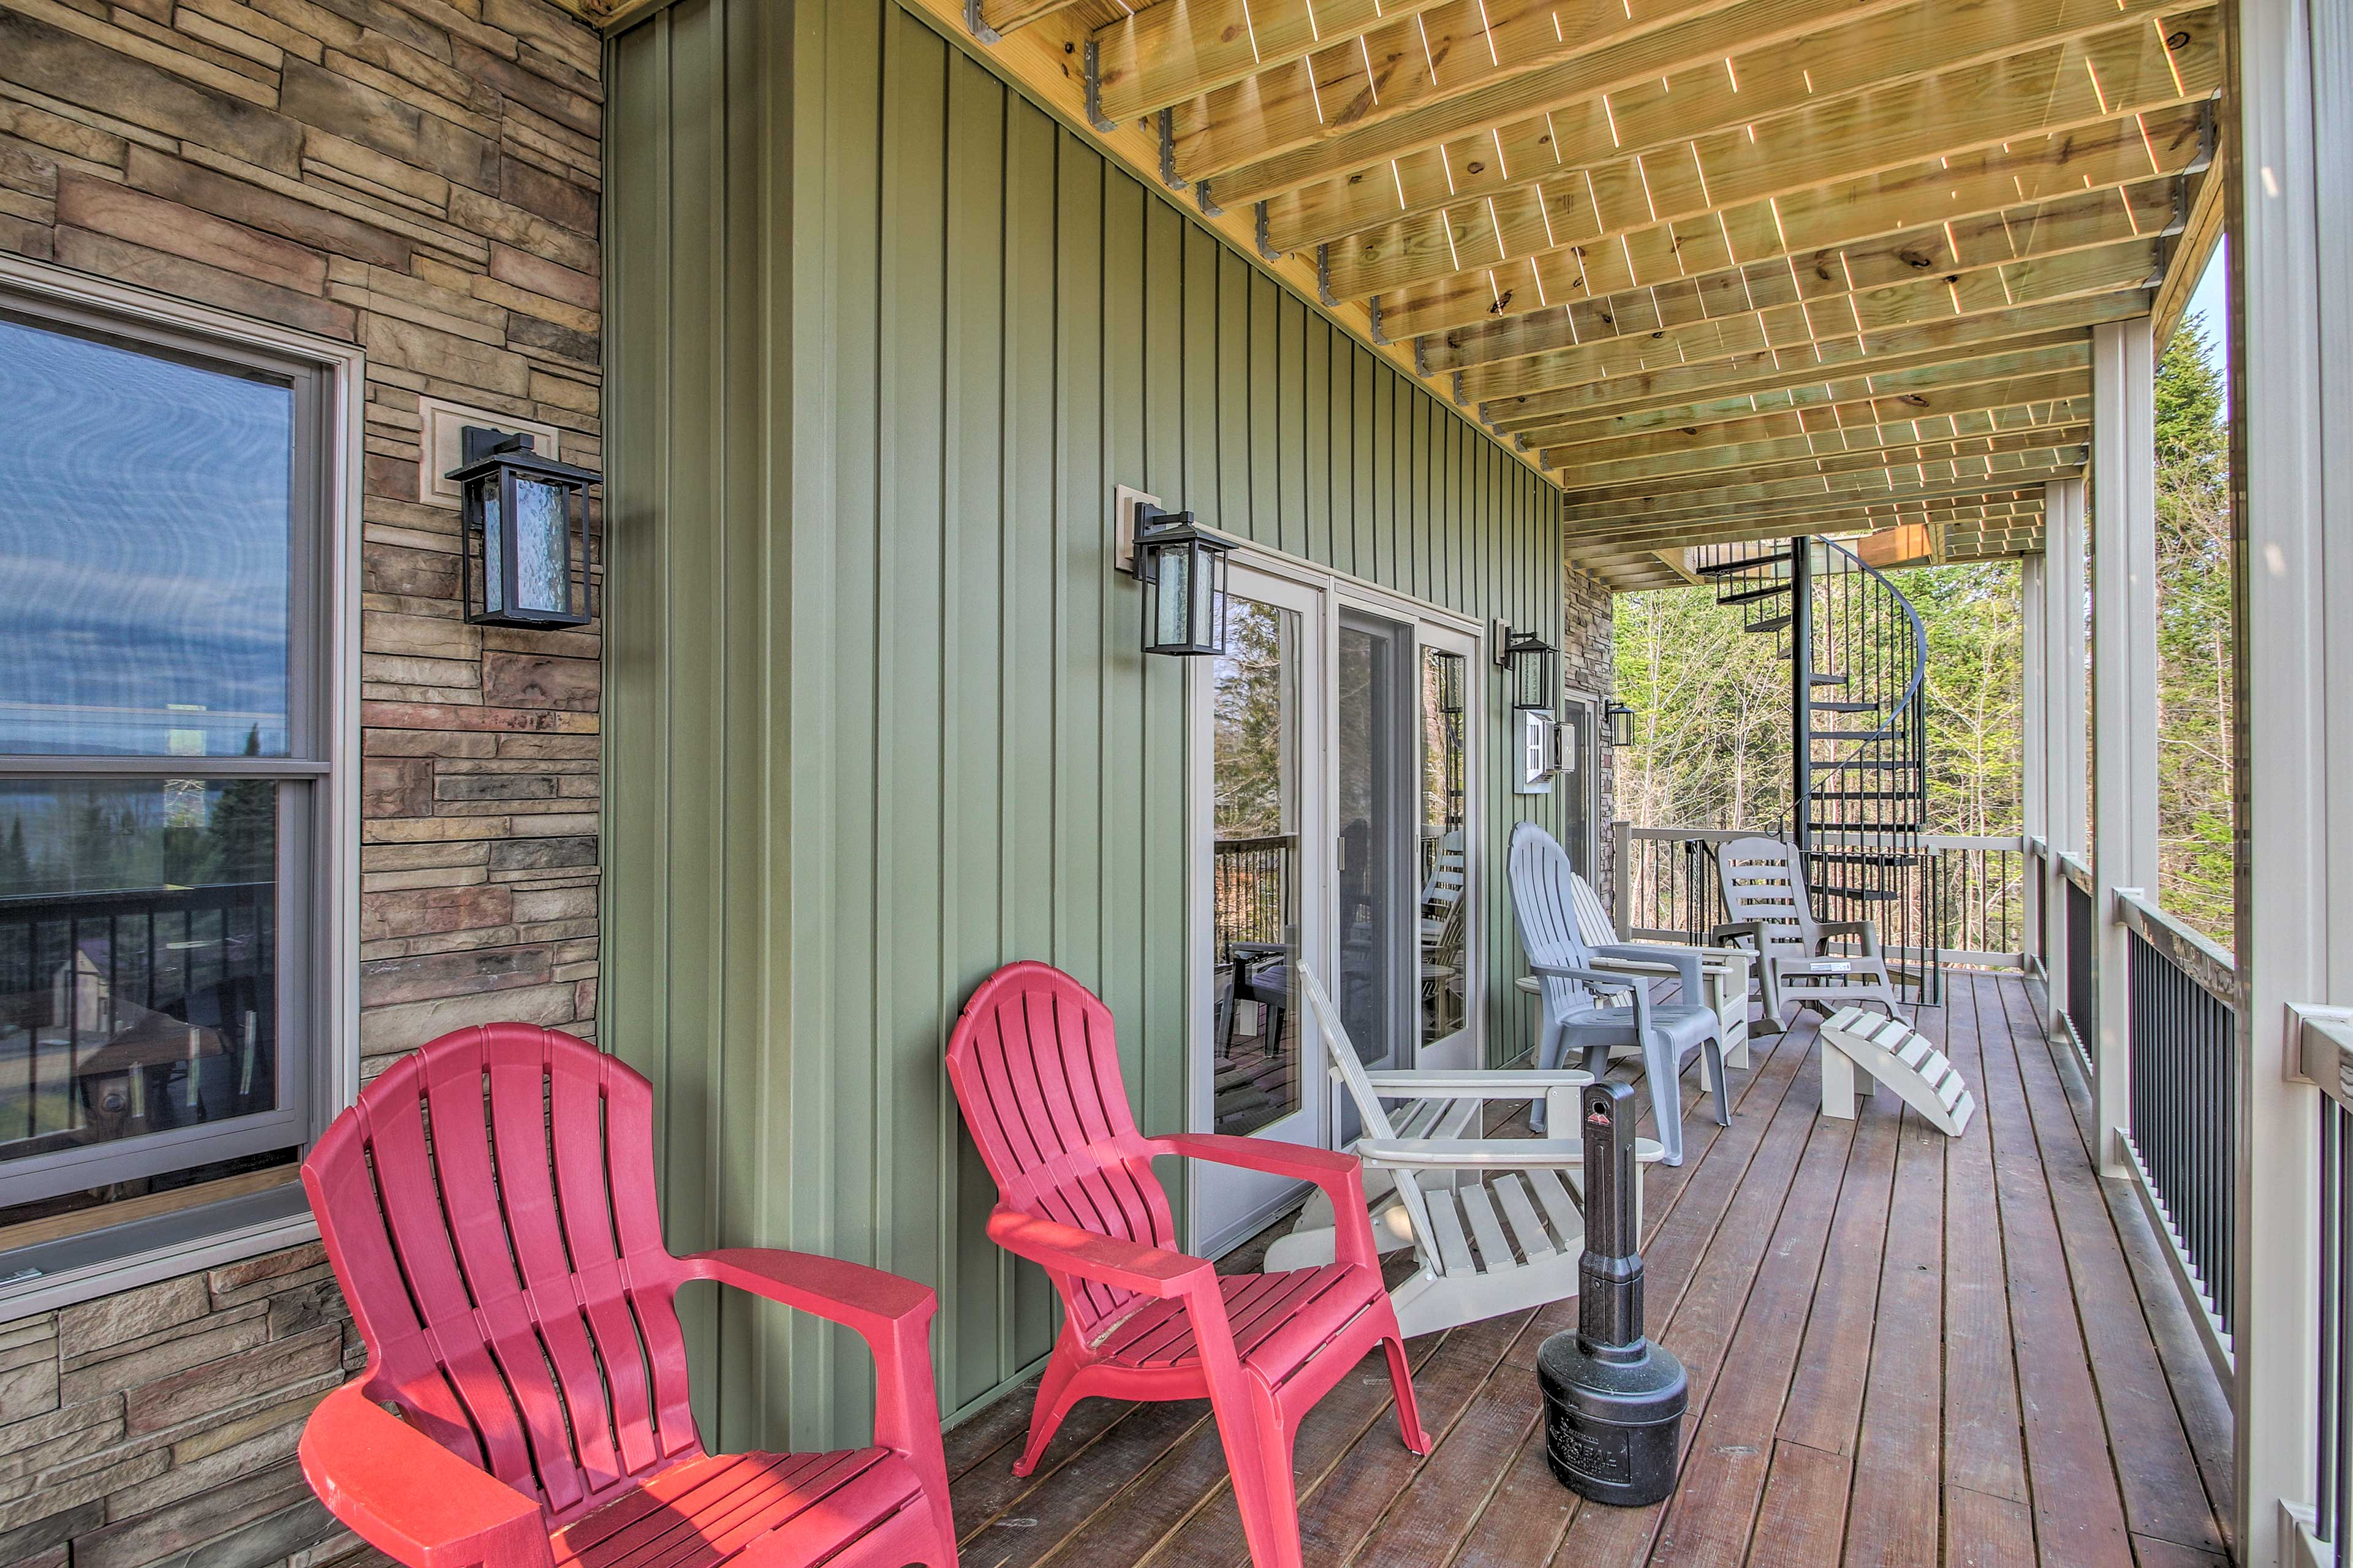 The deck offers plenty of outdoor seating.